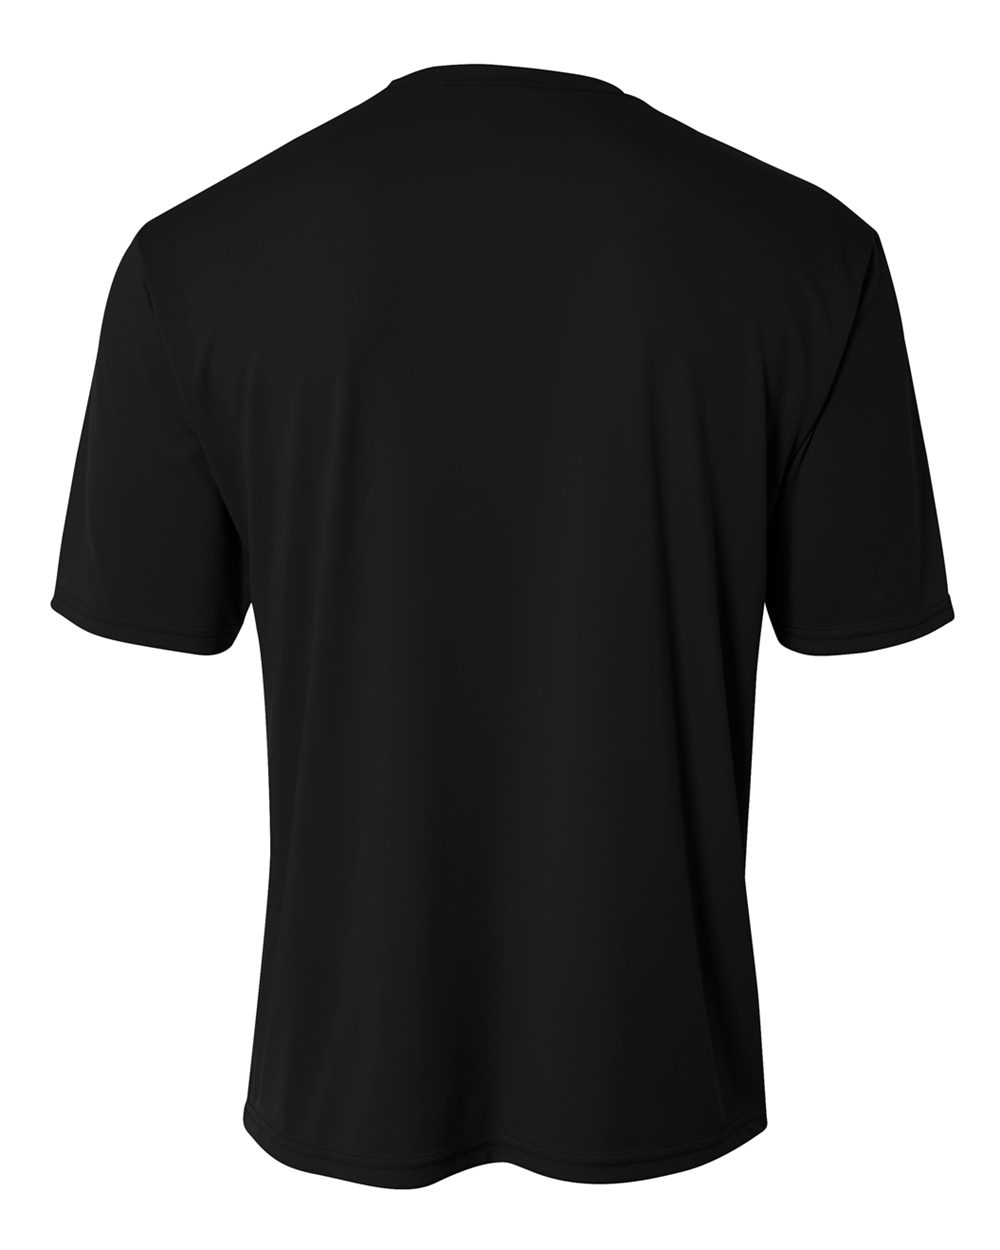 mw-polo-black-backshot.jpg